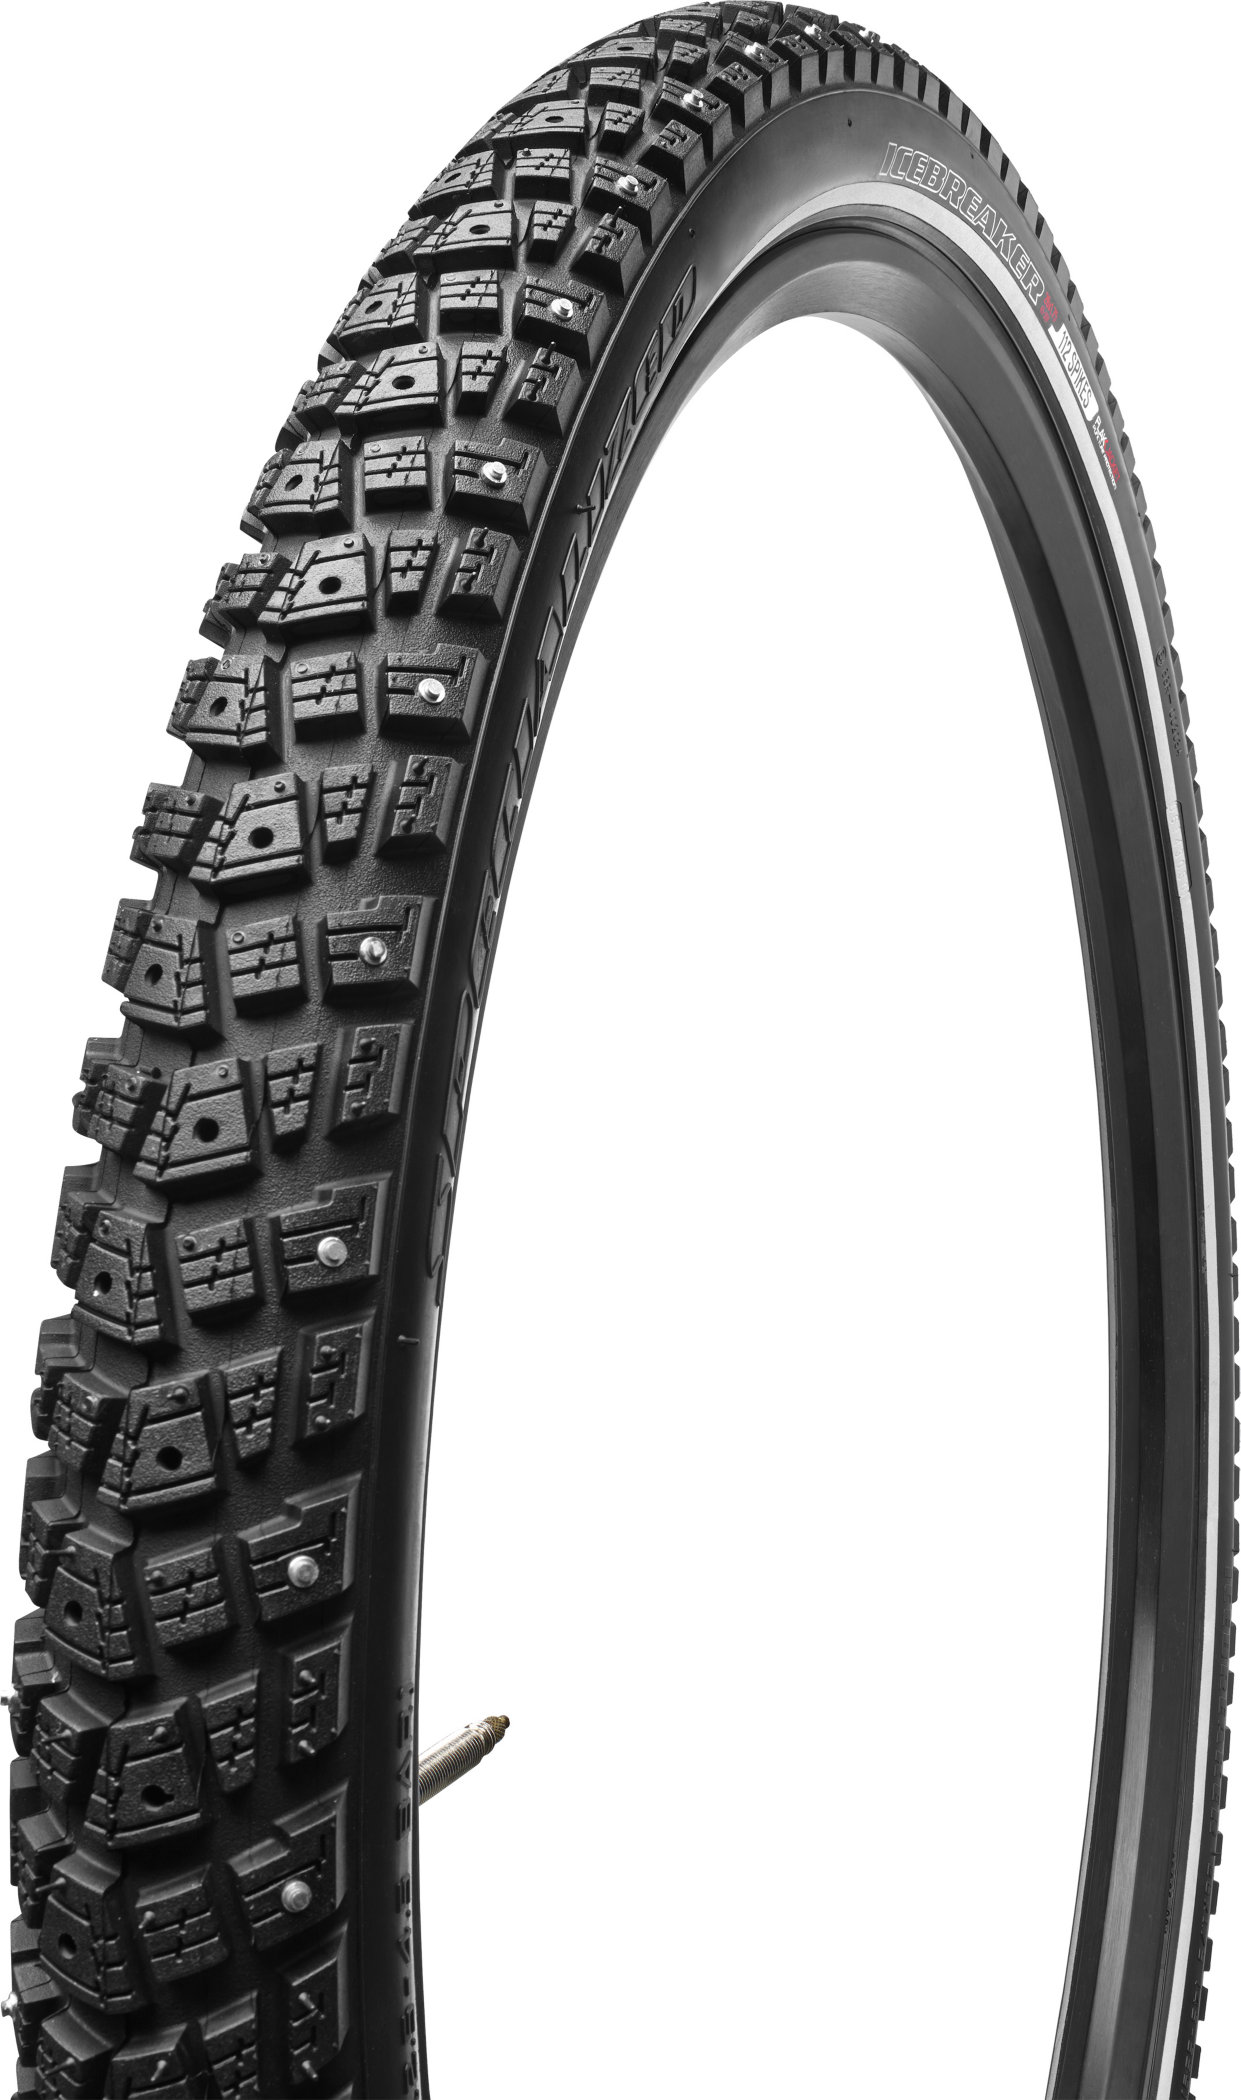 SPECIALIZED ICEBREAKER 138 PARTIAL STUD REFLECT TIRE 700X38C - SPECIALIZED ICEBREAKER 138 PARTIAL STUD REFLECT TIRE 700X38C